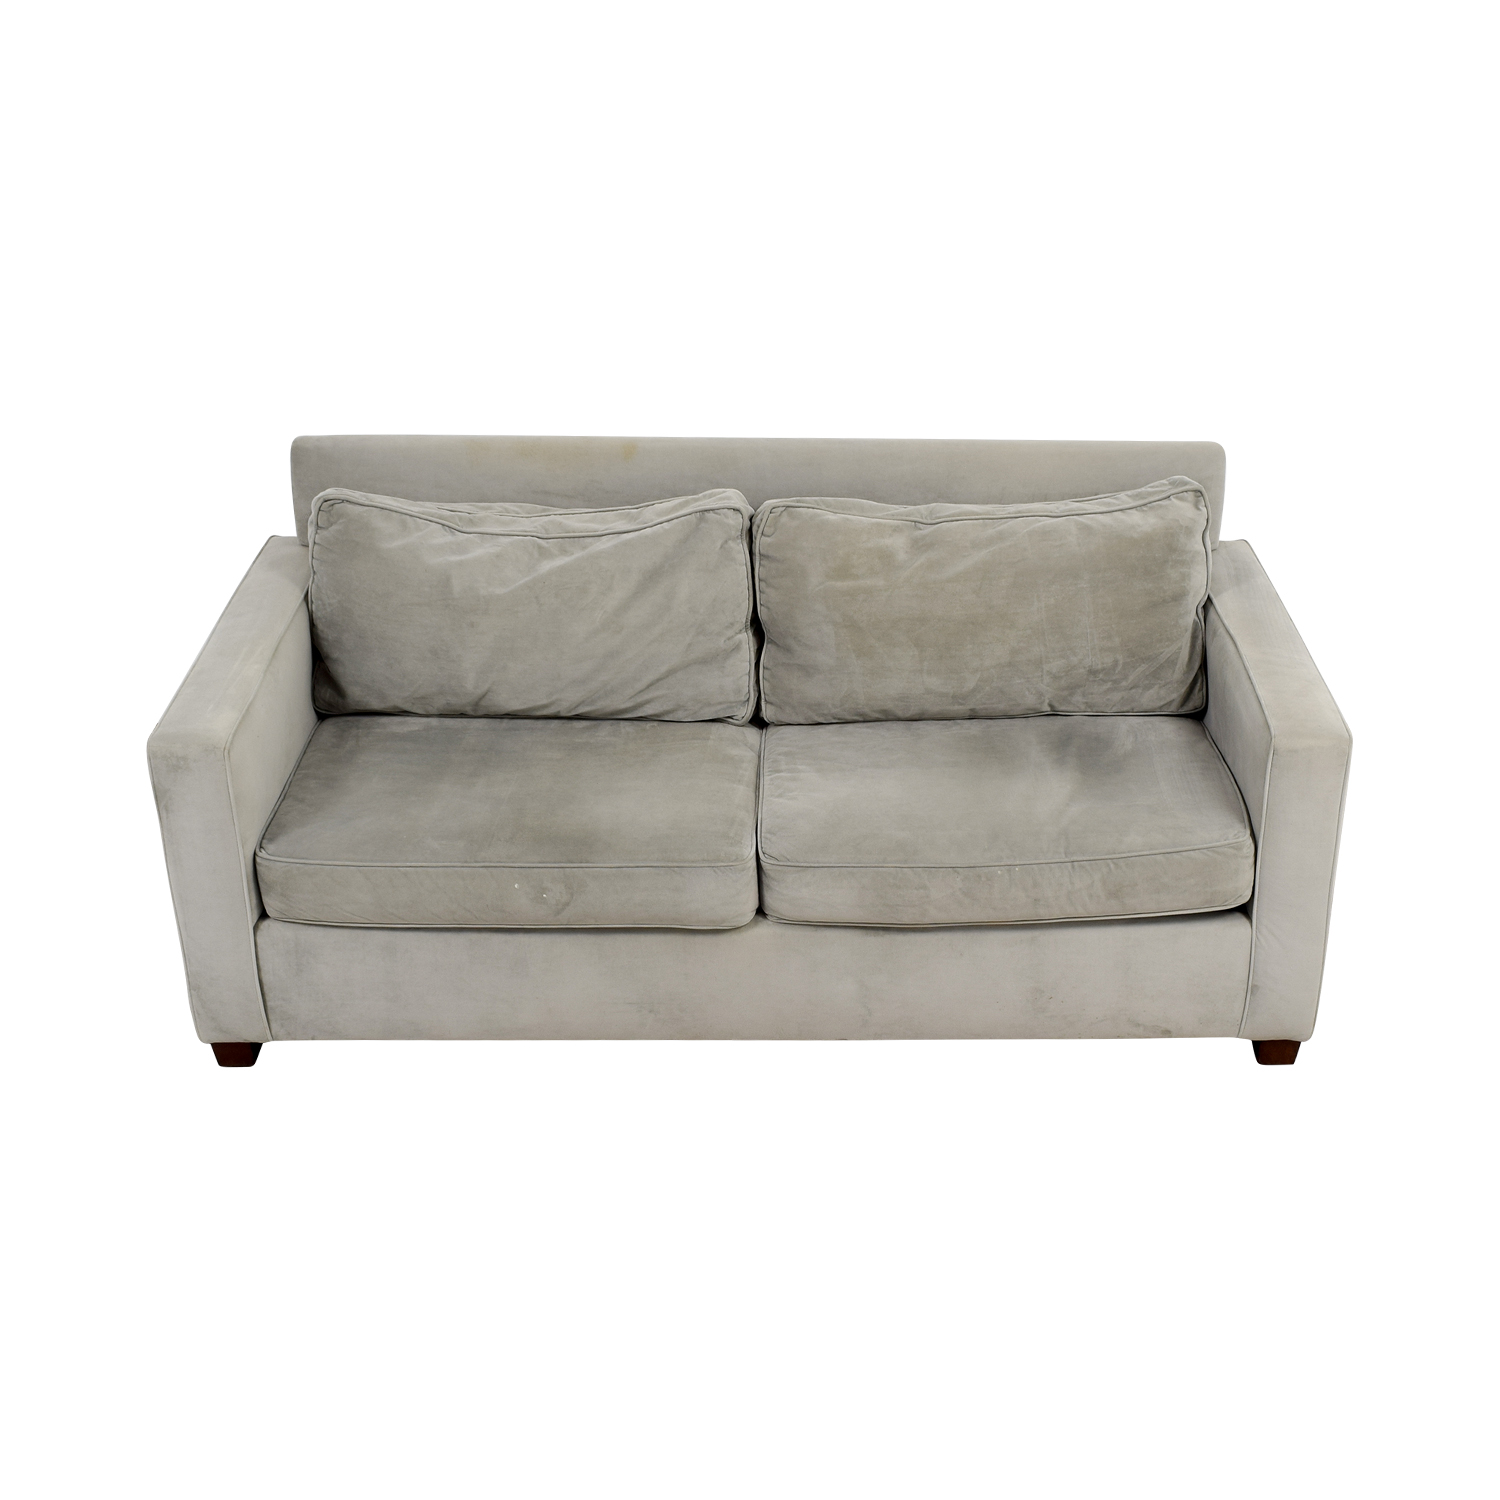 West Elm West Elm Henry Grey Couch coupon